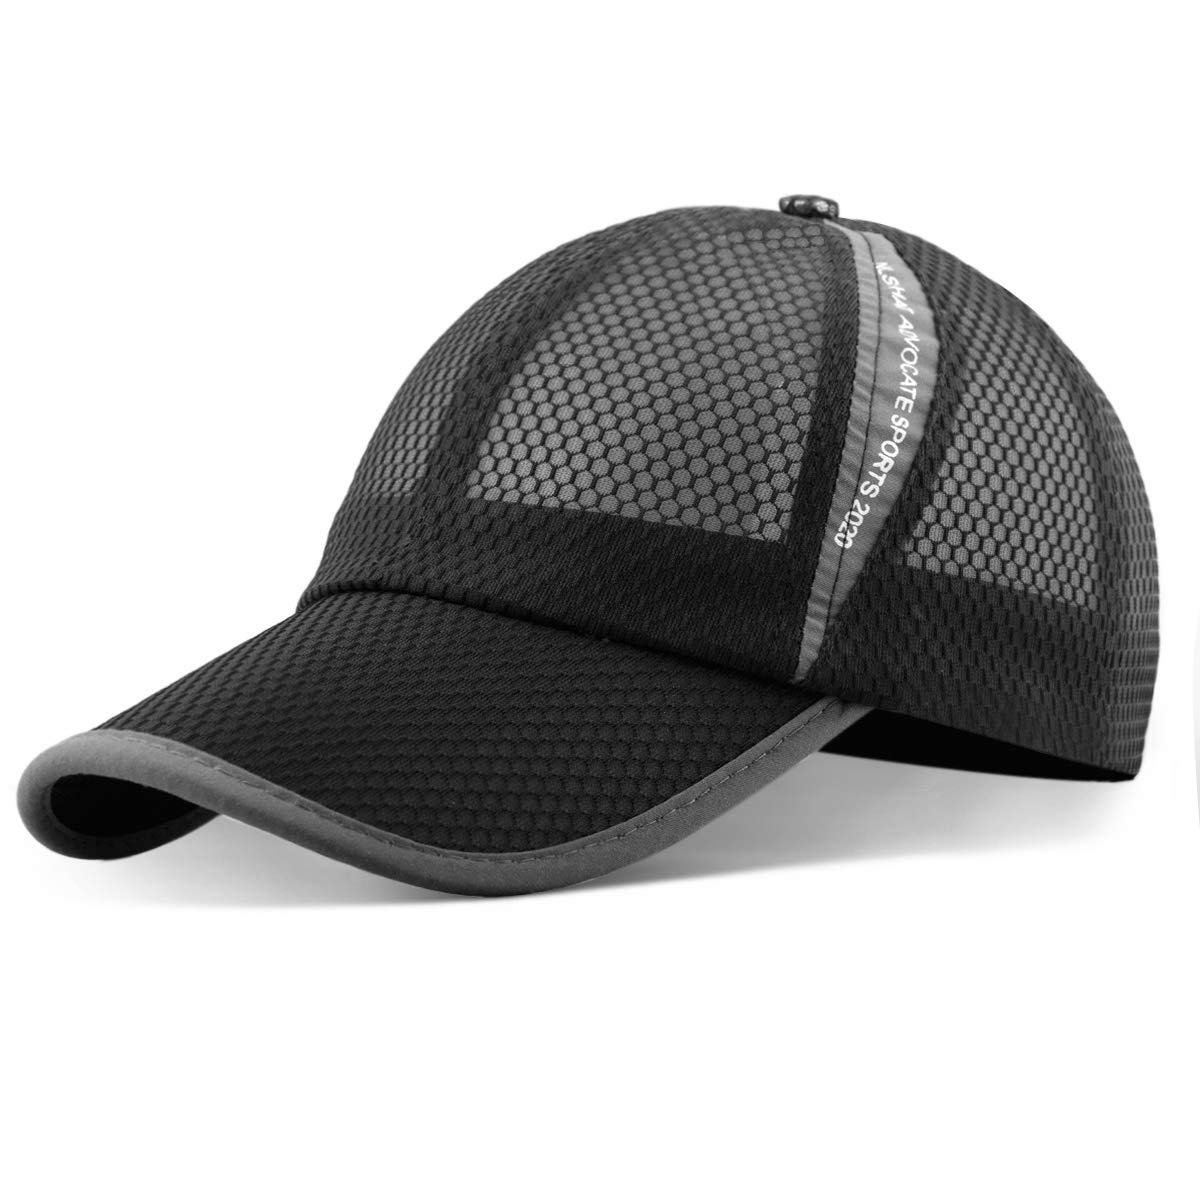 ELLEWIN Unisex Breathable Quick Dry Mesh Baseball Cap Running hat